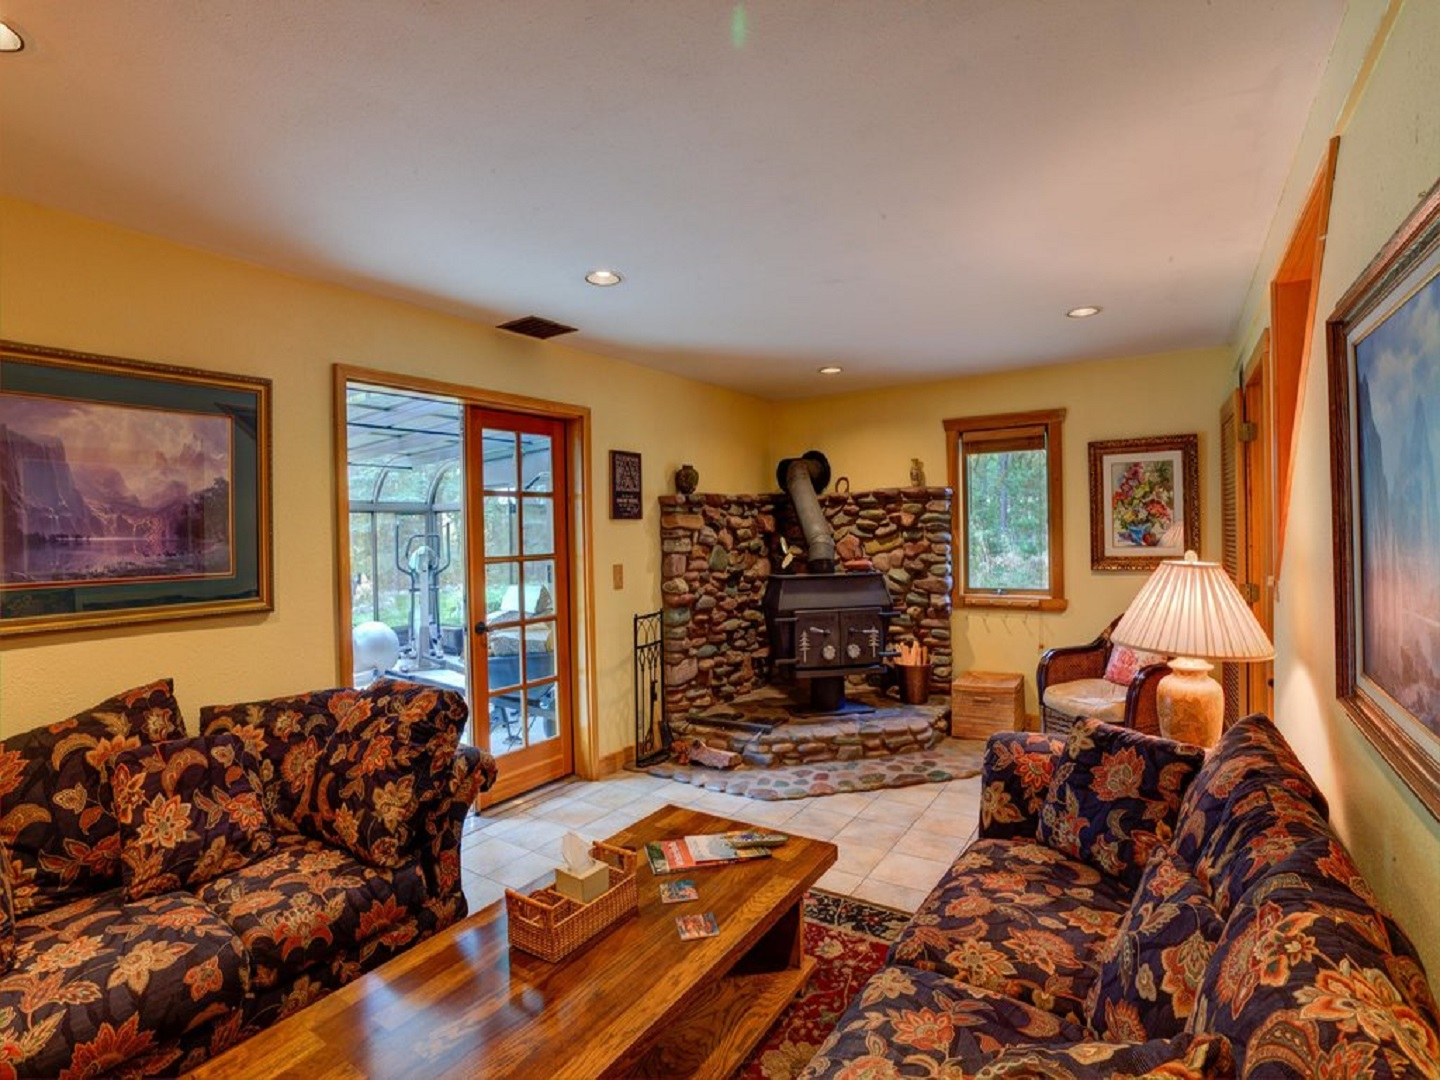 A living room filled with furniture and a fire place at Moss Mountain Inn B&B.